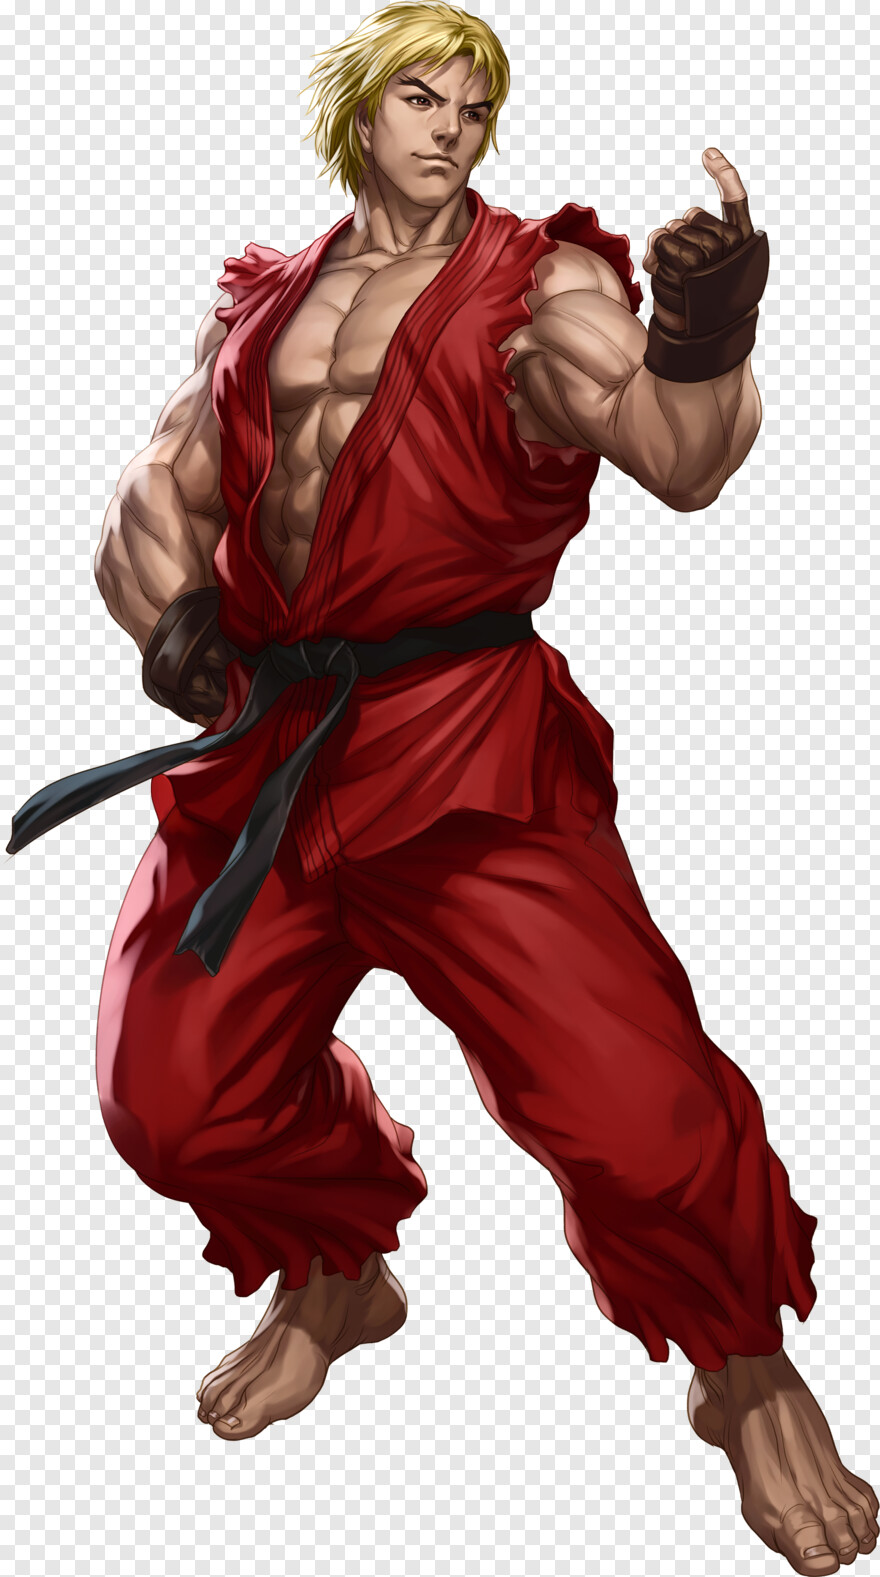 Ryu Street Fighter Characters Ken Transparent Png